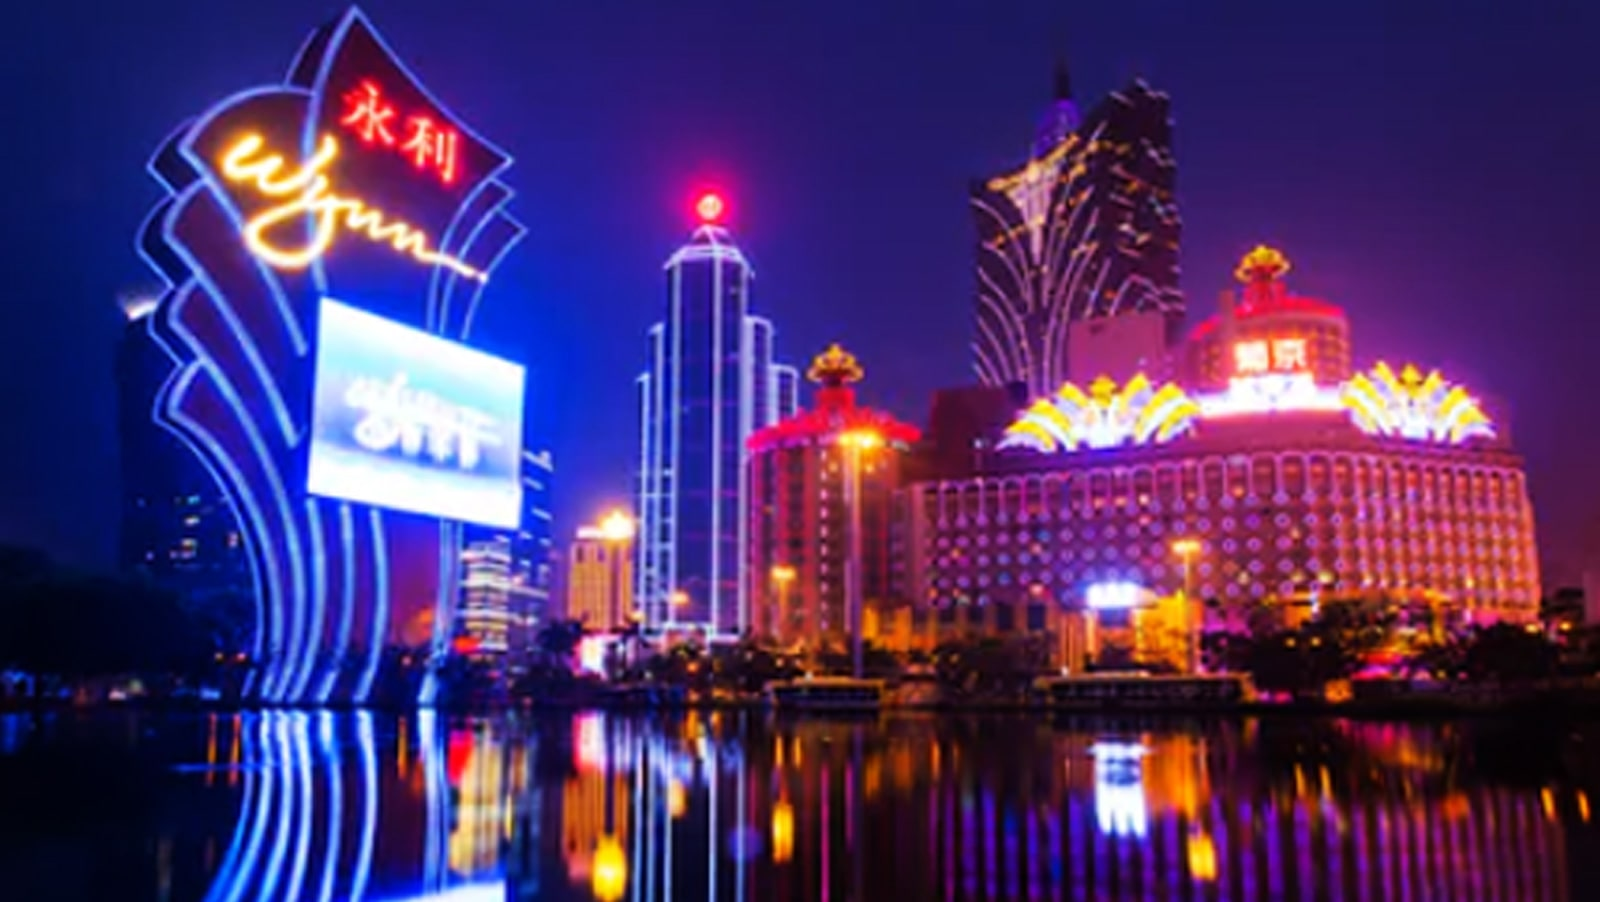 macau-casinos-may-be-open-but-traffic-remains-almost-nil